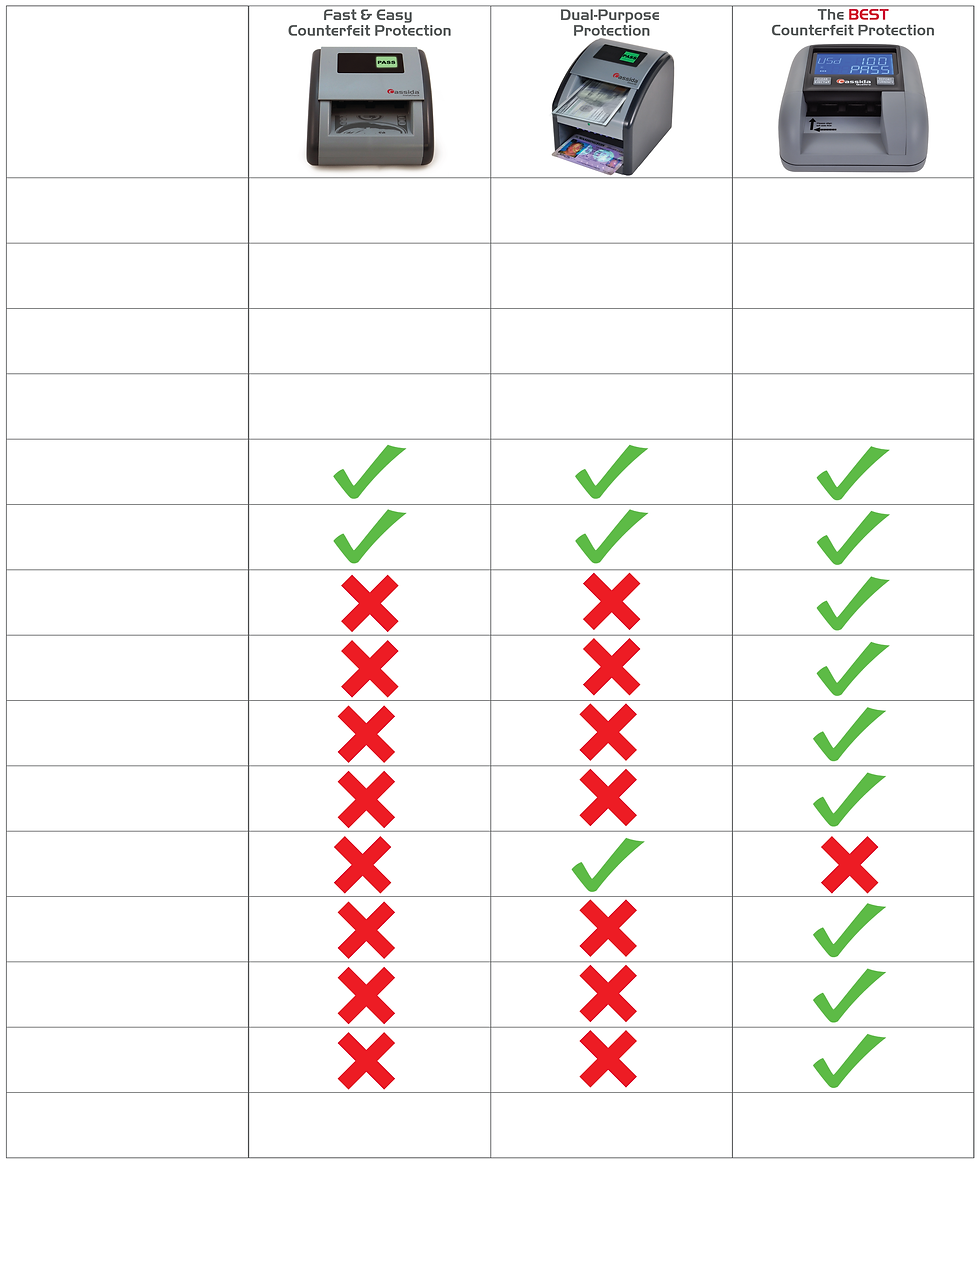 A comparison of the features of each Cassida Counterfeit Detector.